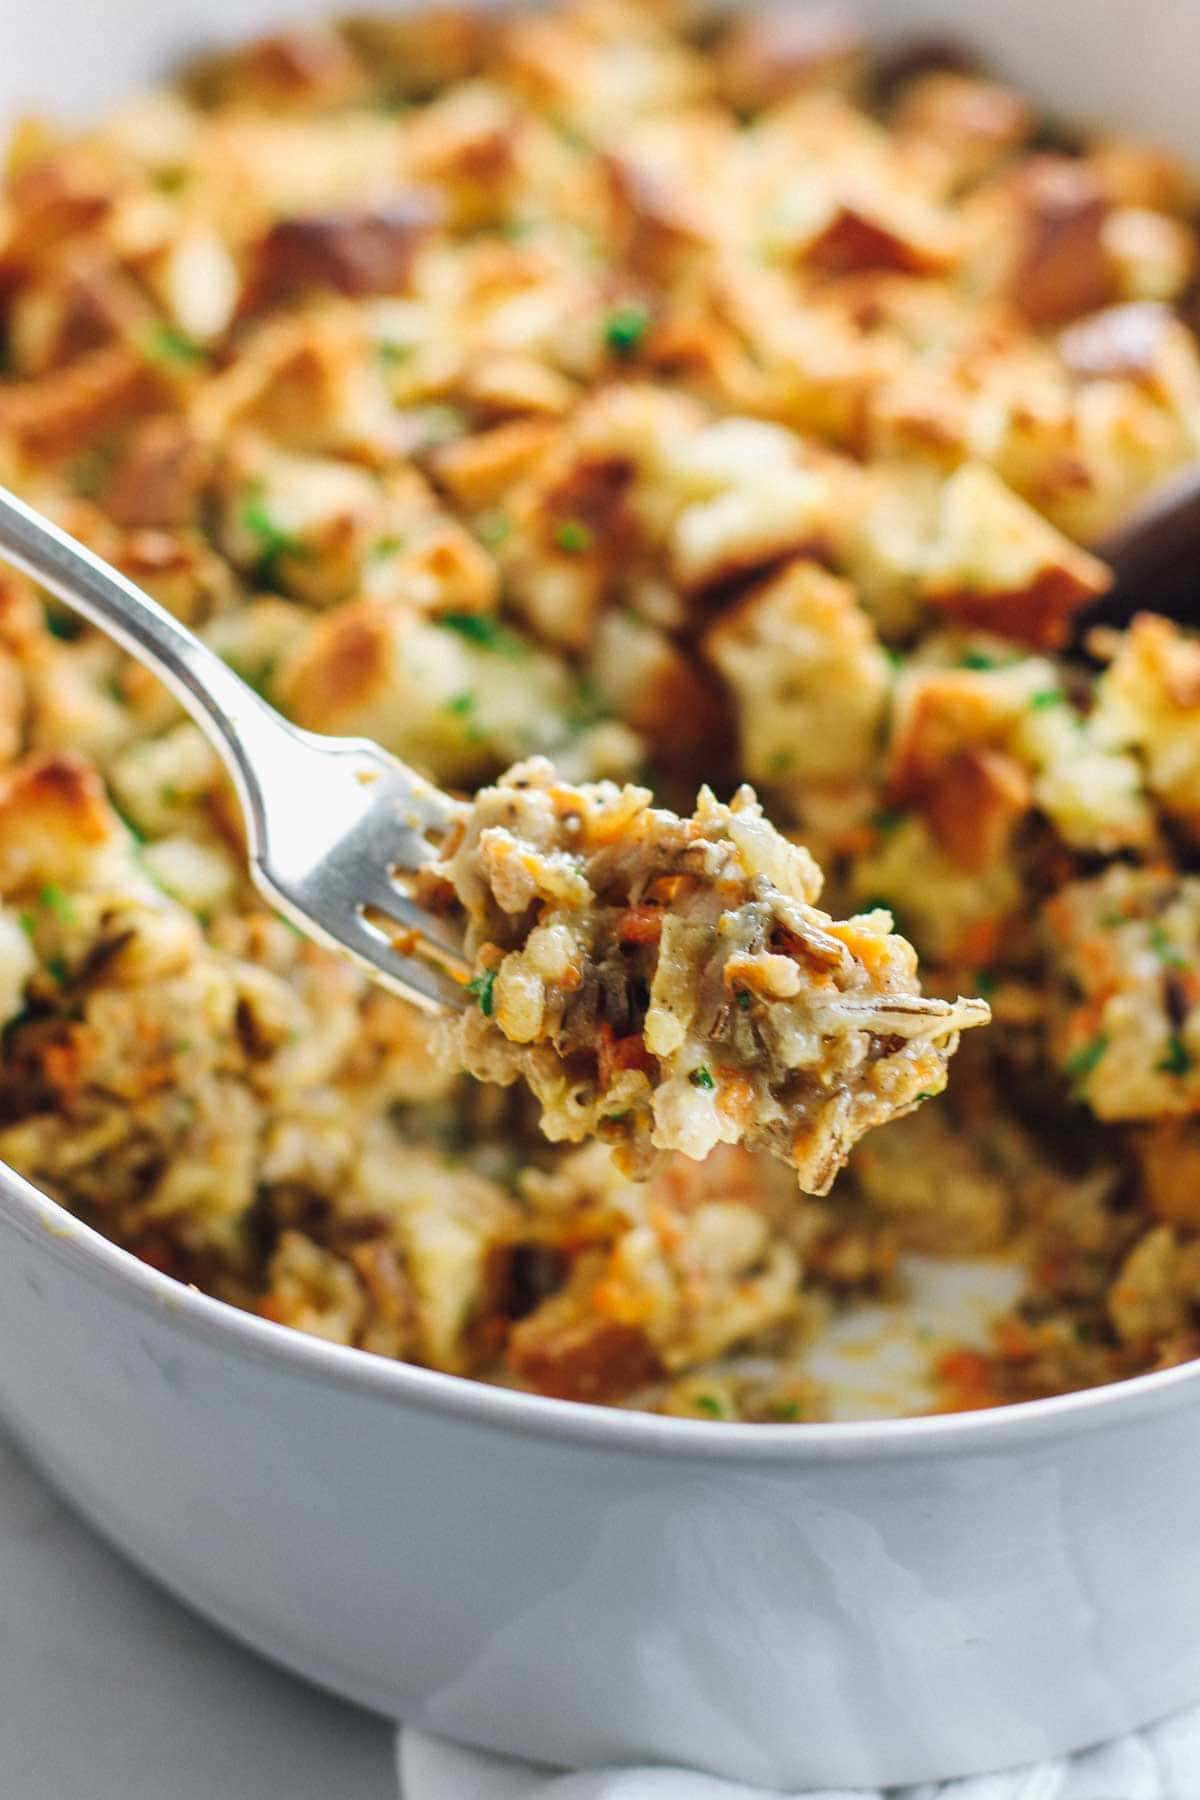 Chicken Wild Rice Casserole - just like the classic soup but in casserole form, topped with golden buttery bread cubes.